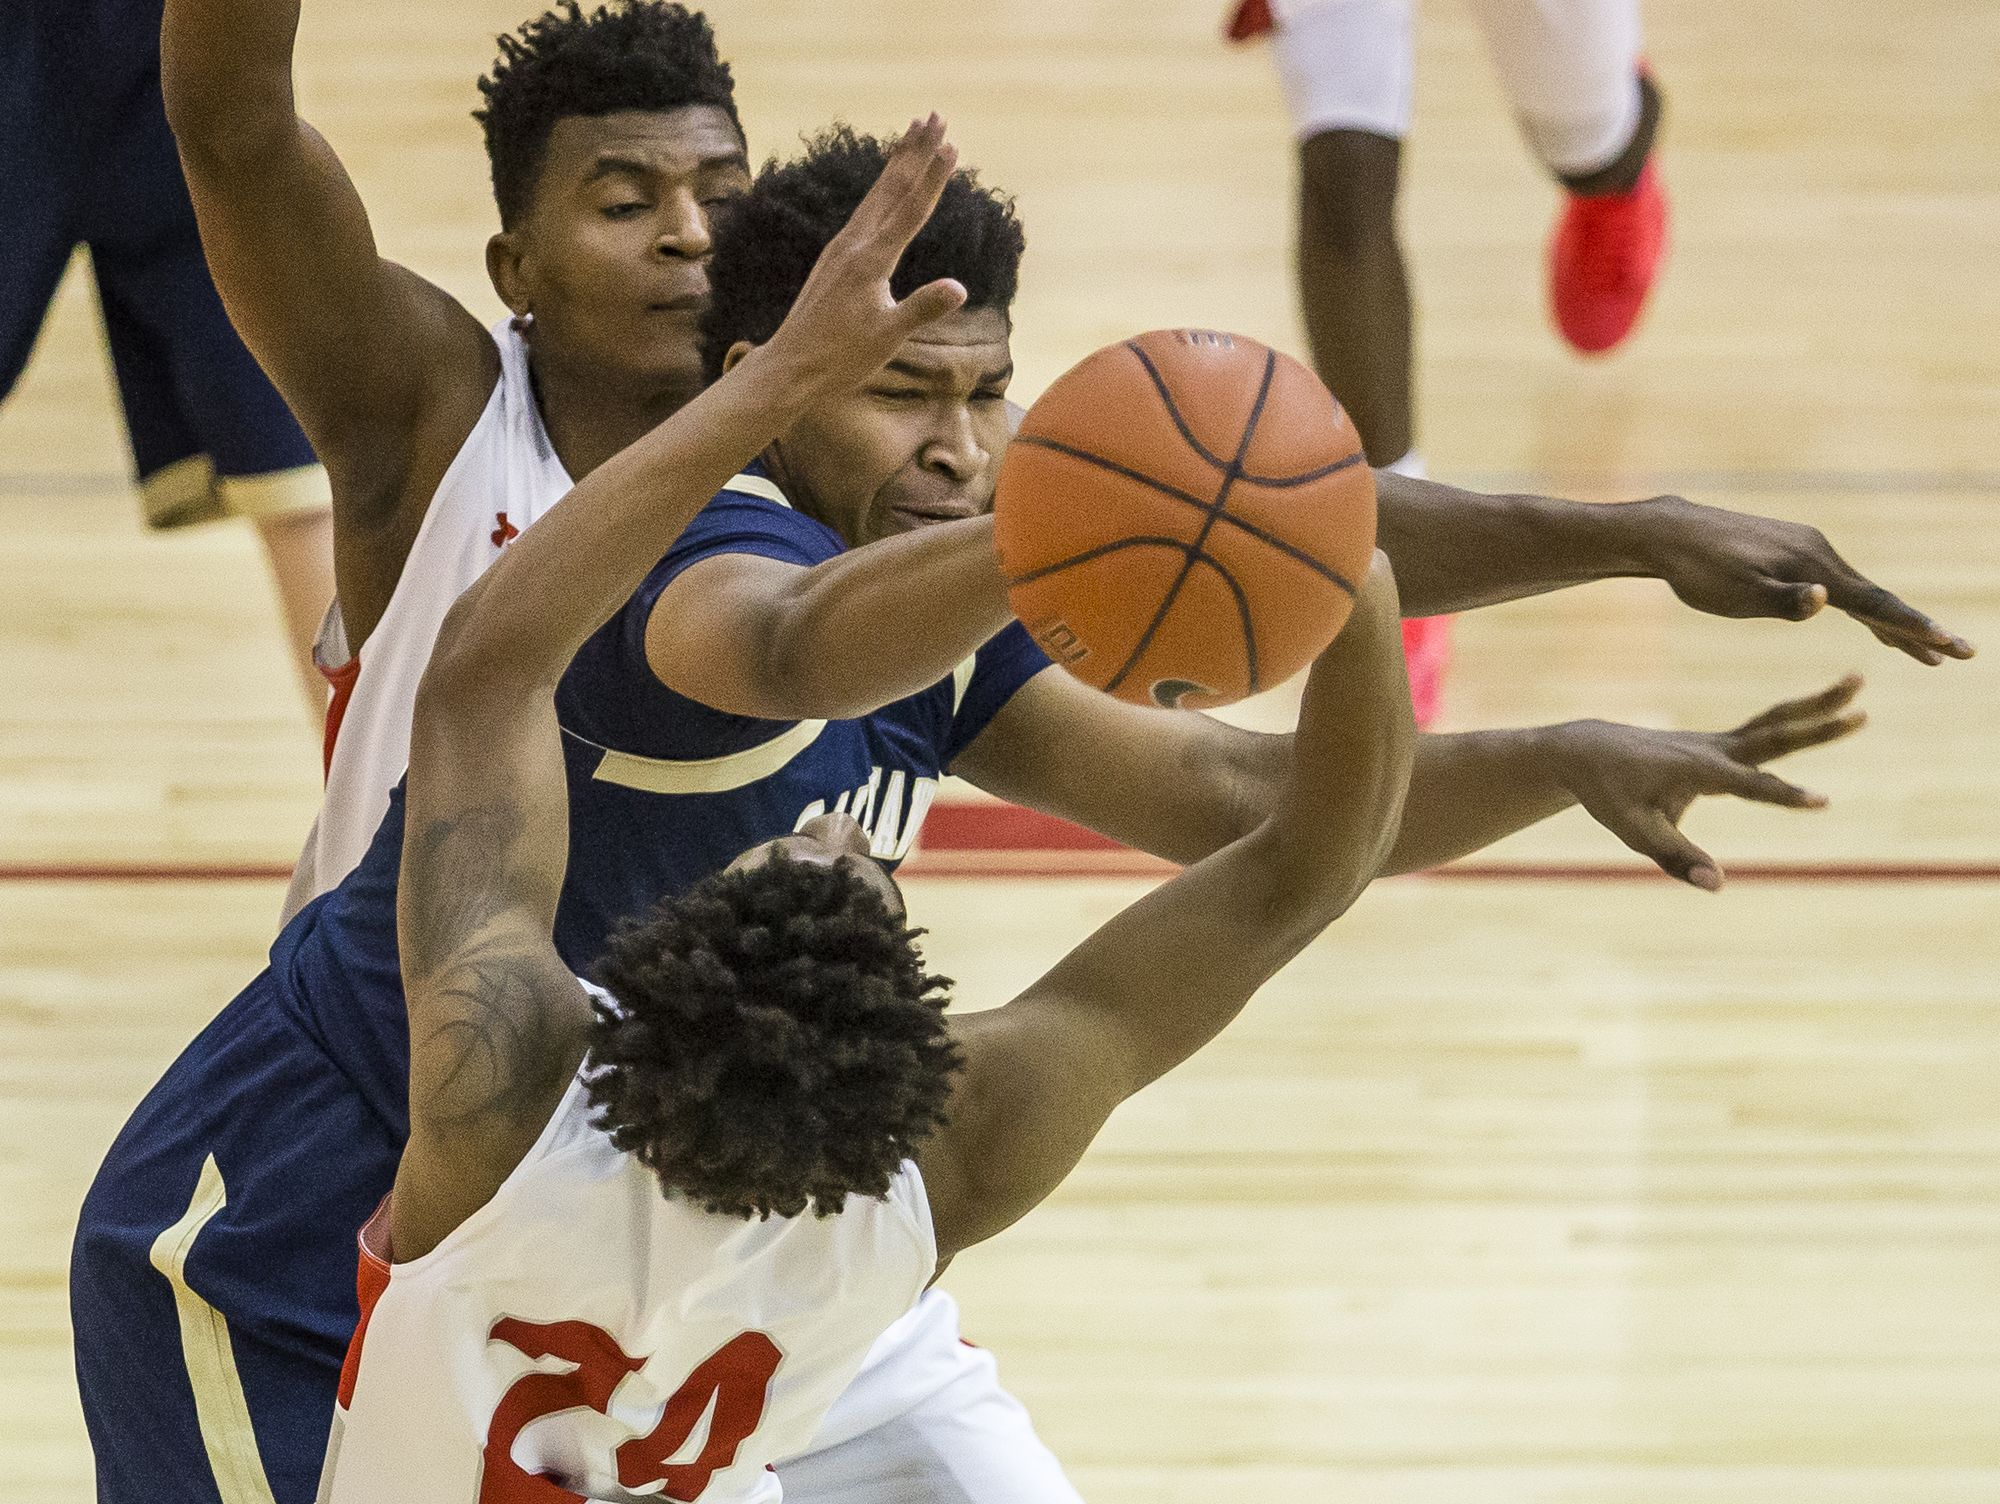 Smyrna's Azubuike Nwankwo and Iyair Hinson-Purnell (No. 24) force Salesianum's Tariq Ingraham to turn the ball over after a double team in the first half of Smyrna's 53-40 win over Salesianum at Smyrna High School on Tuesday night.